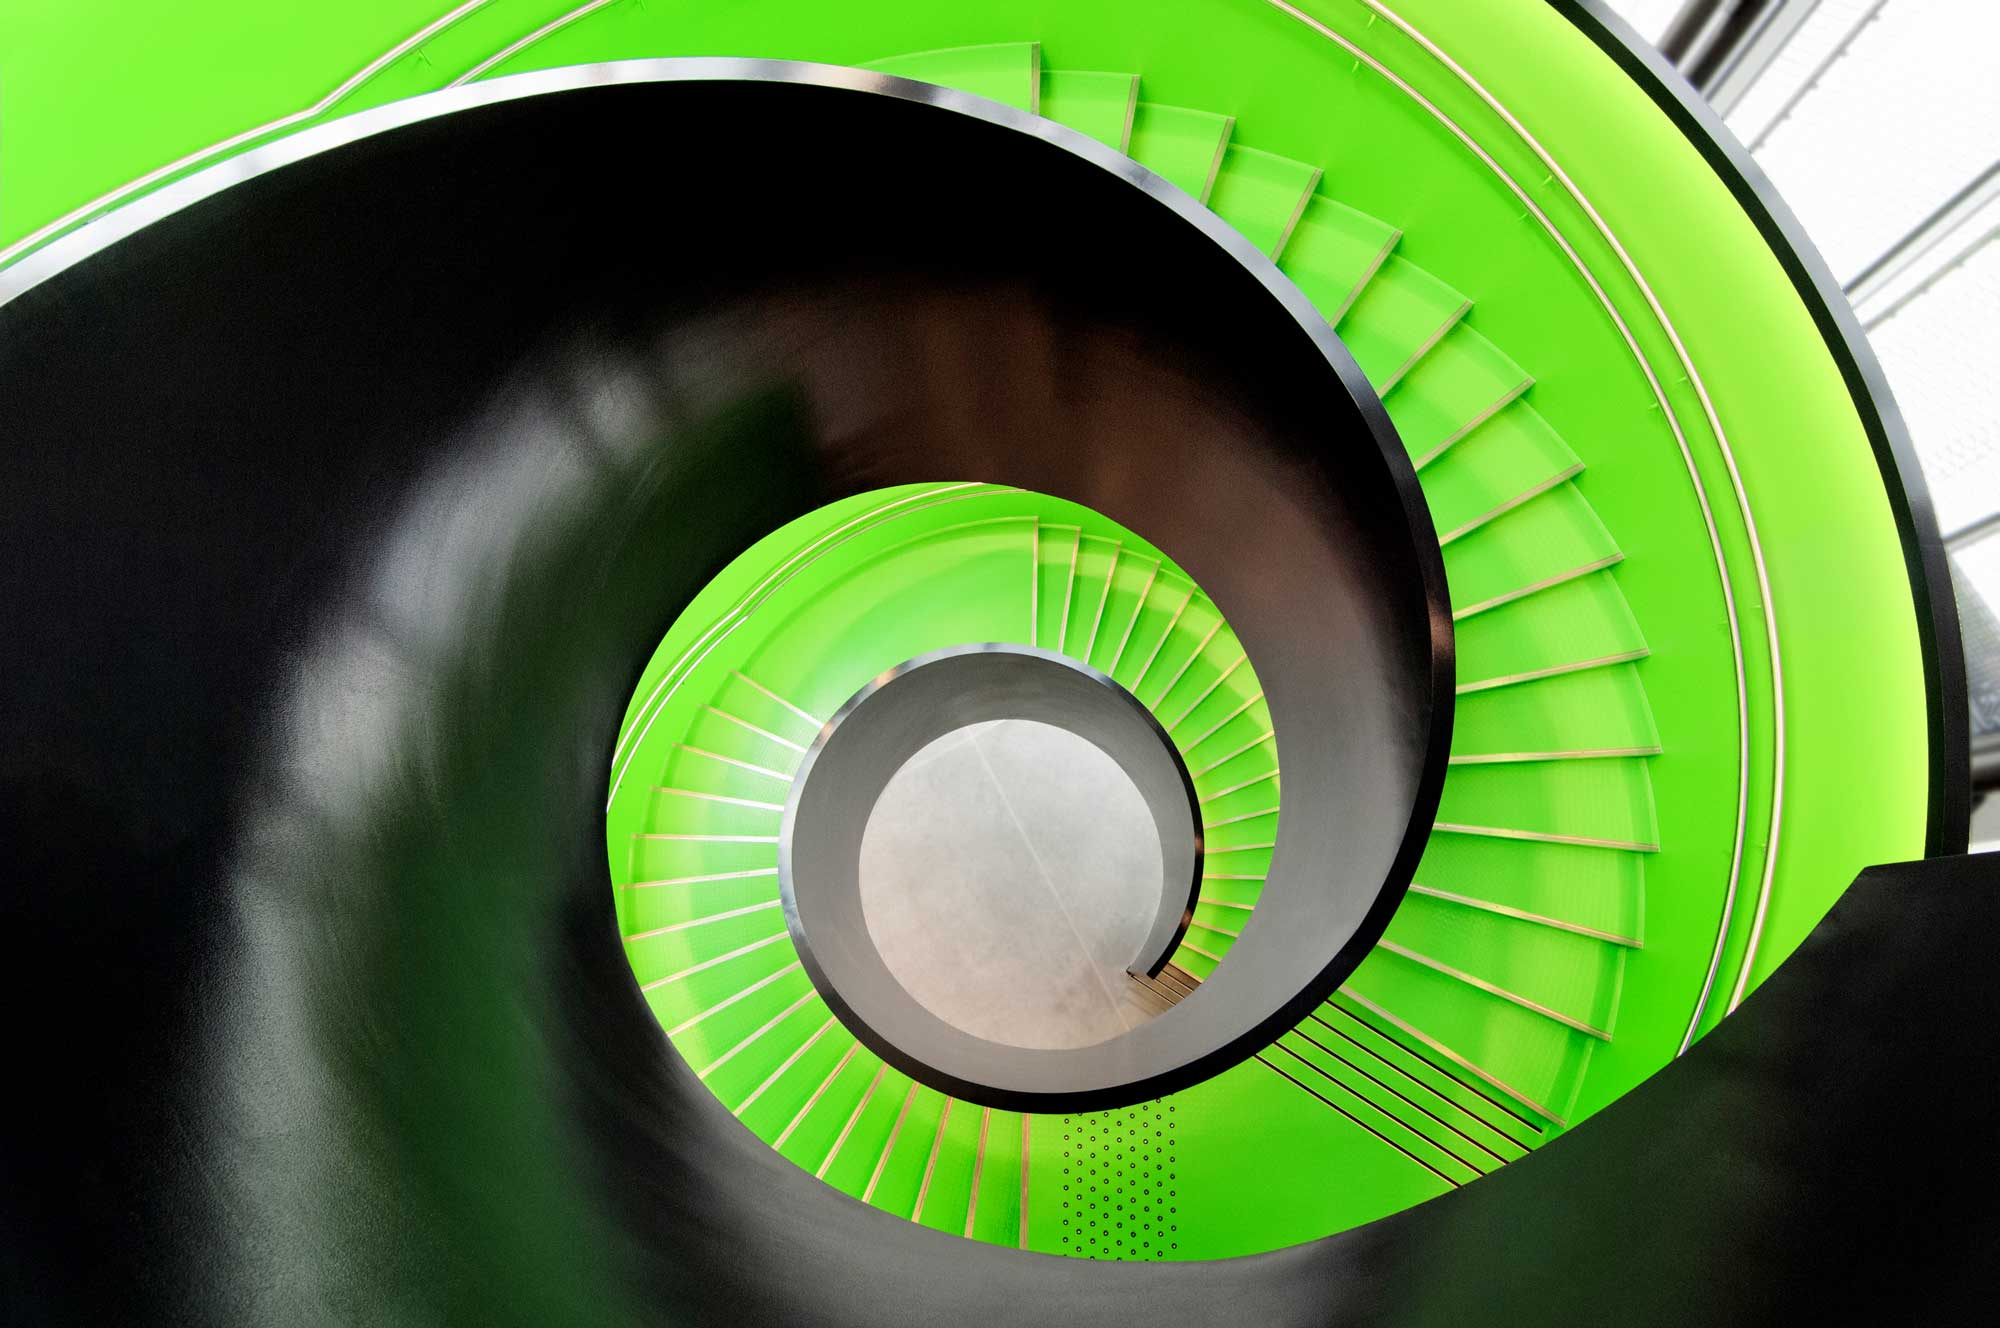 Spiral prefabricated steel staircase in Kimen Cultural Center Stjørdal